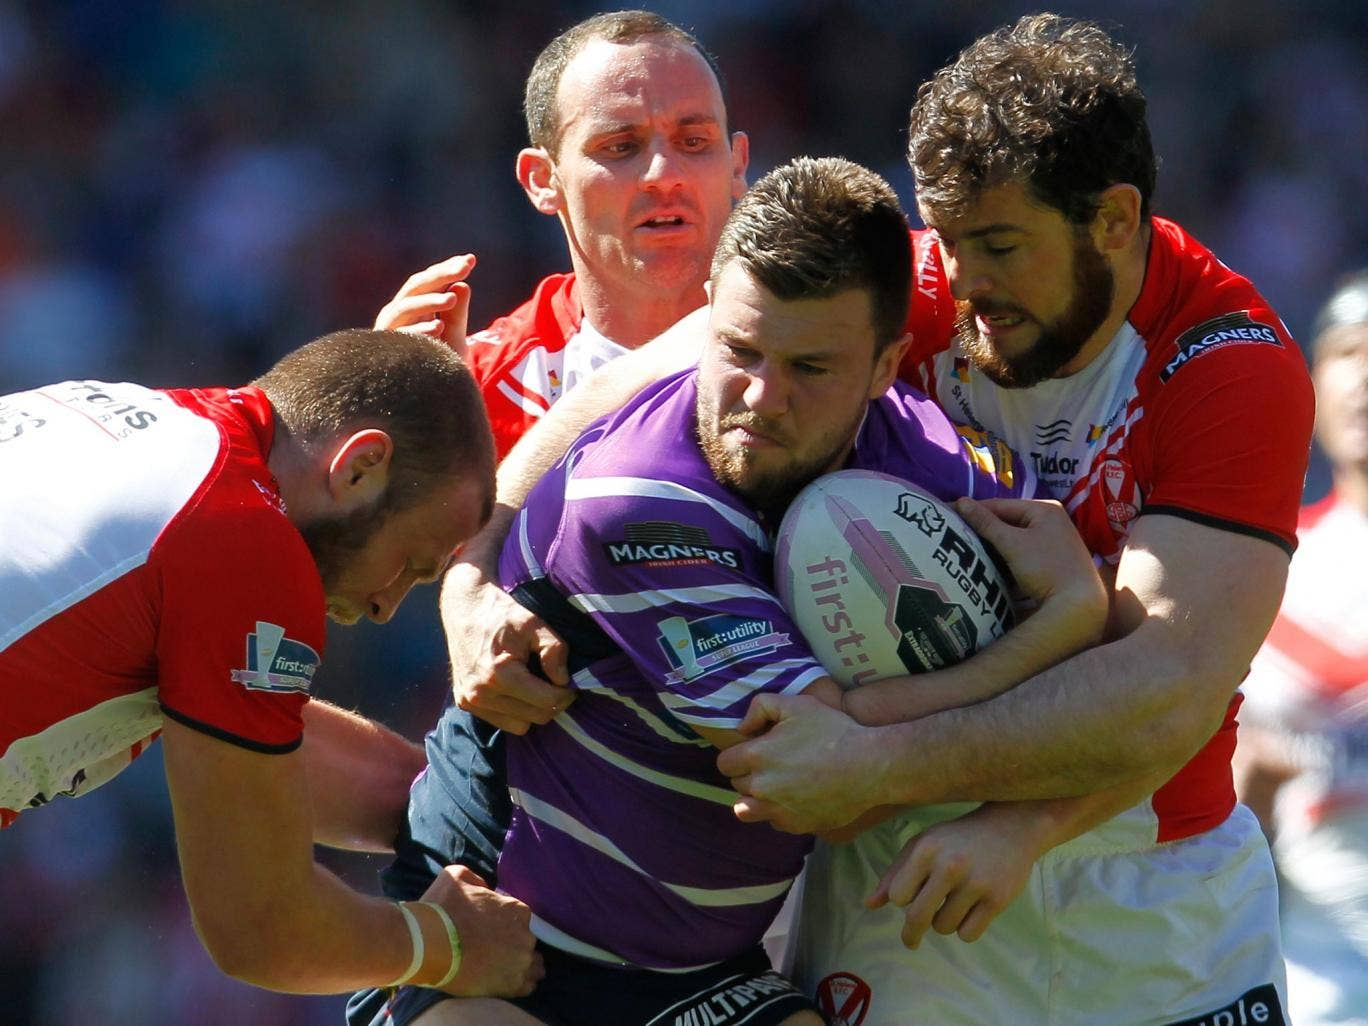 Darrell Goulding of Wigan is tackled by Josh Jones (L), Lance Hohaia and Paul Wellens (R) during the Super League match between St Helens and Wigan